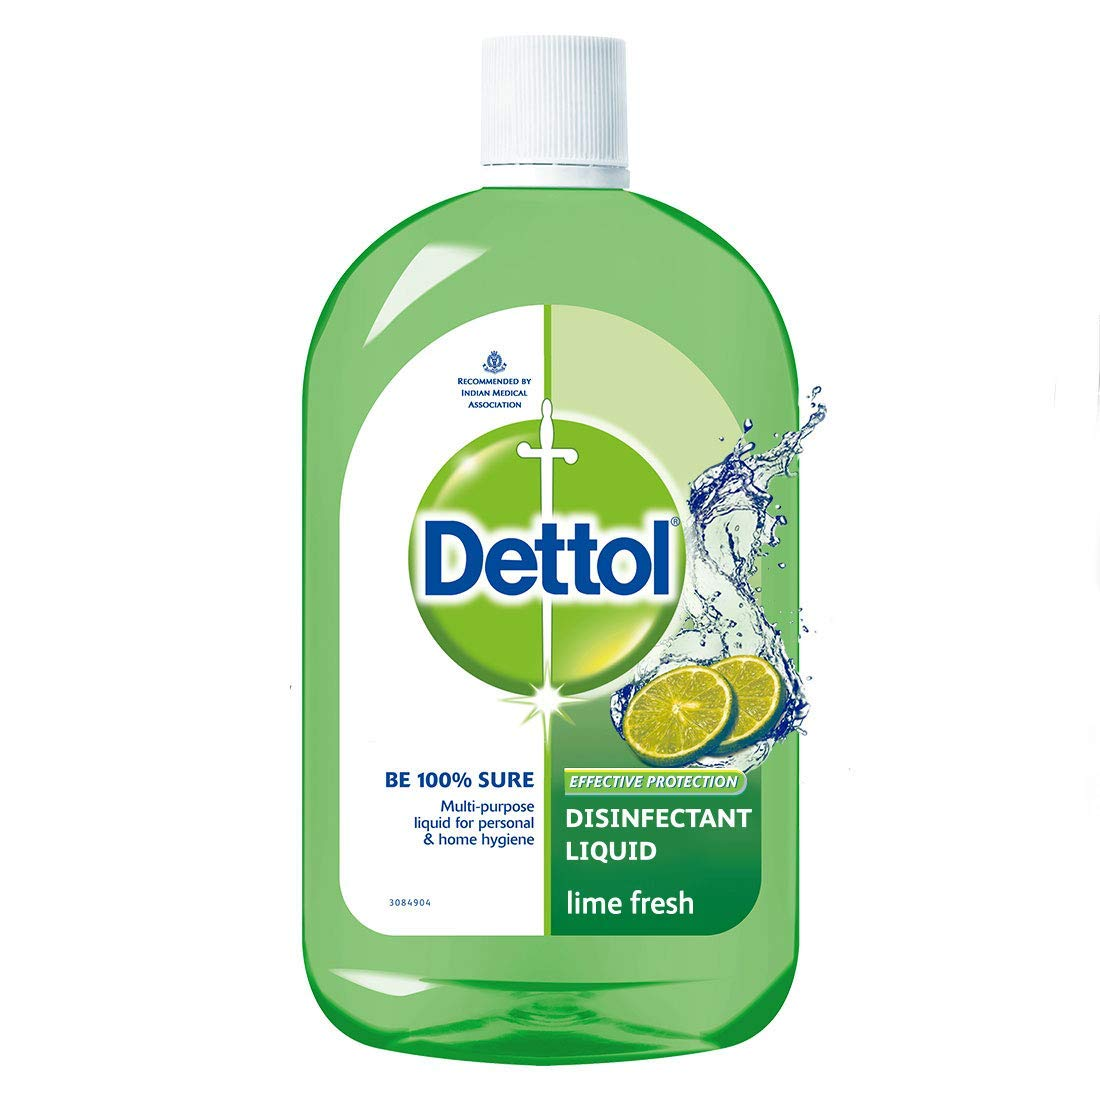 Dettol Liquid Disinfectant Cleaner for Home, Lime Fresh, 500 ml